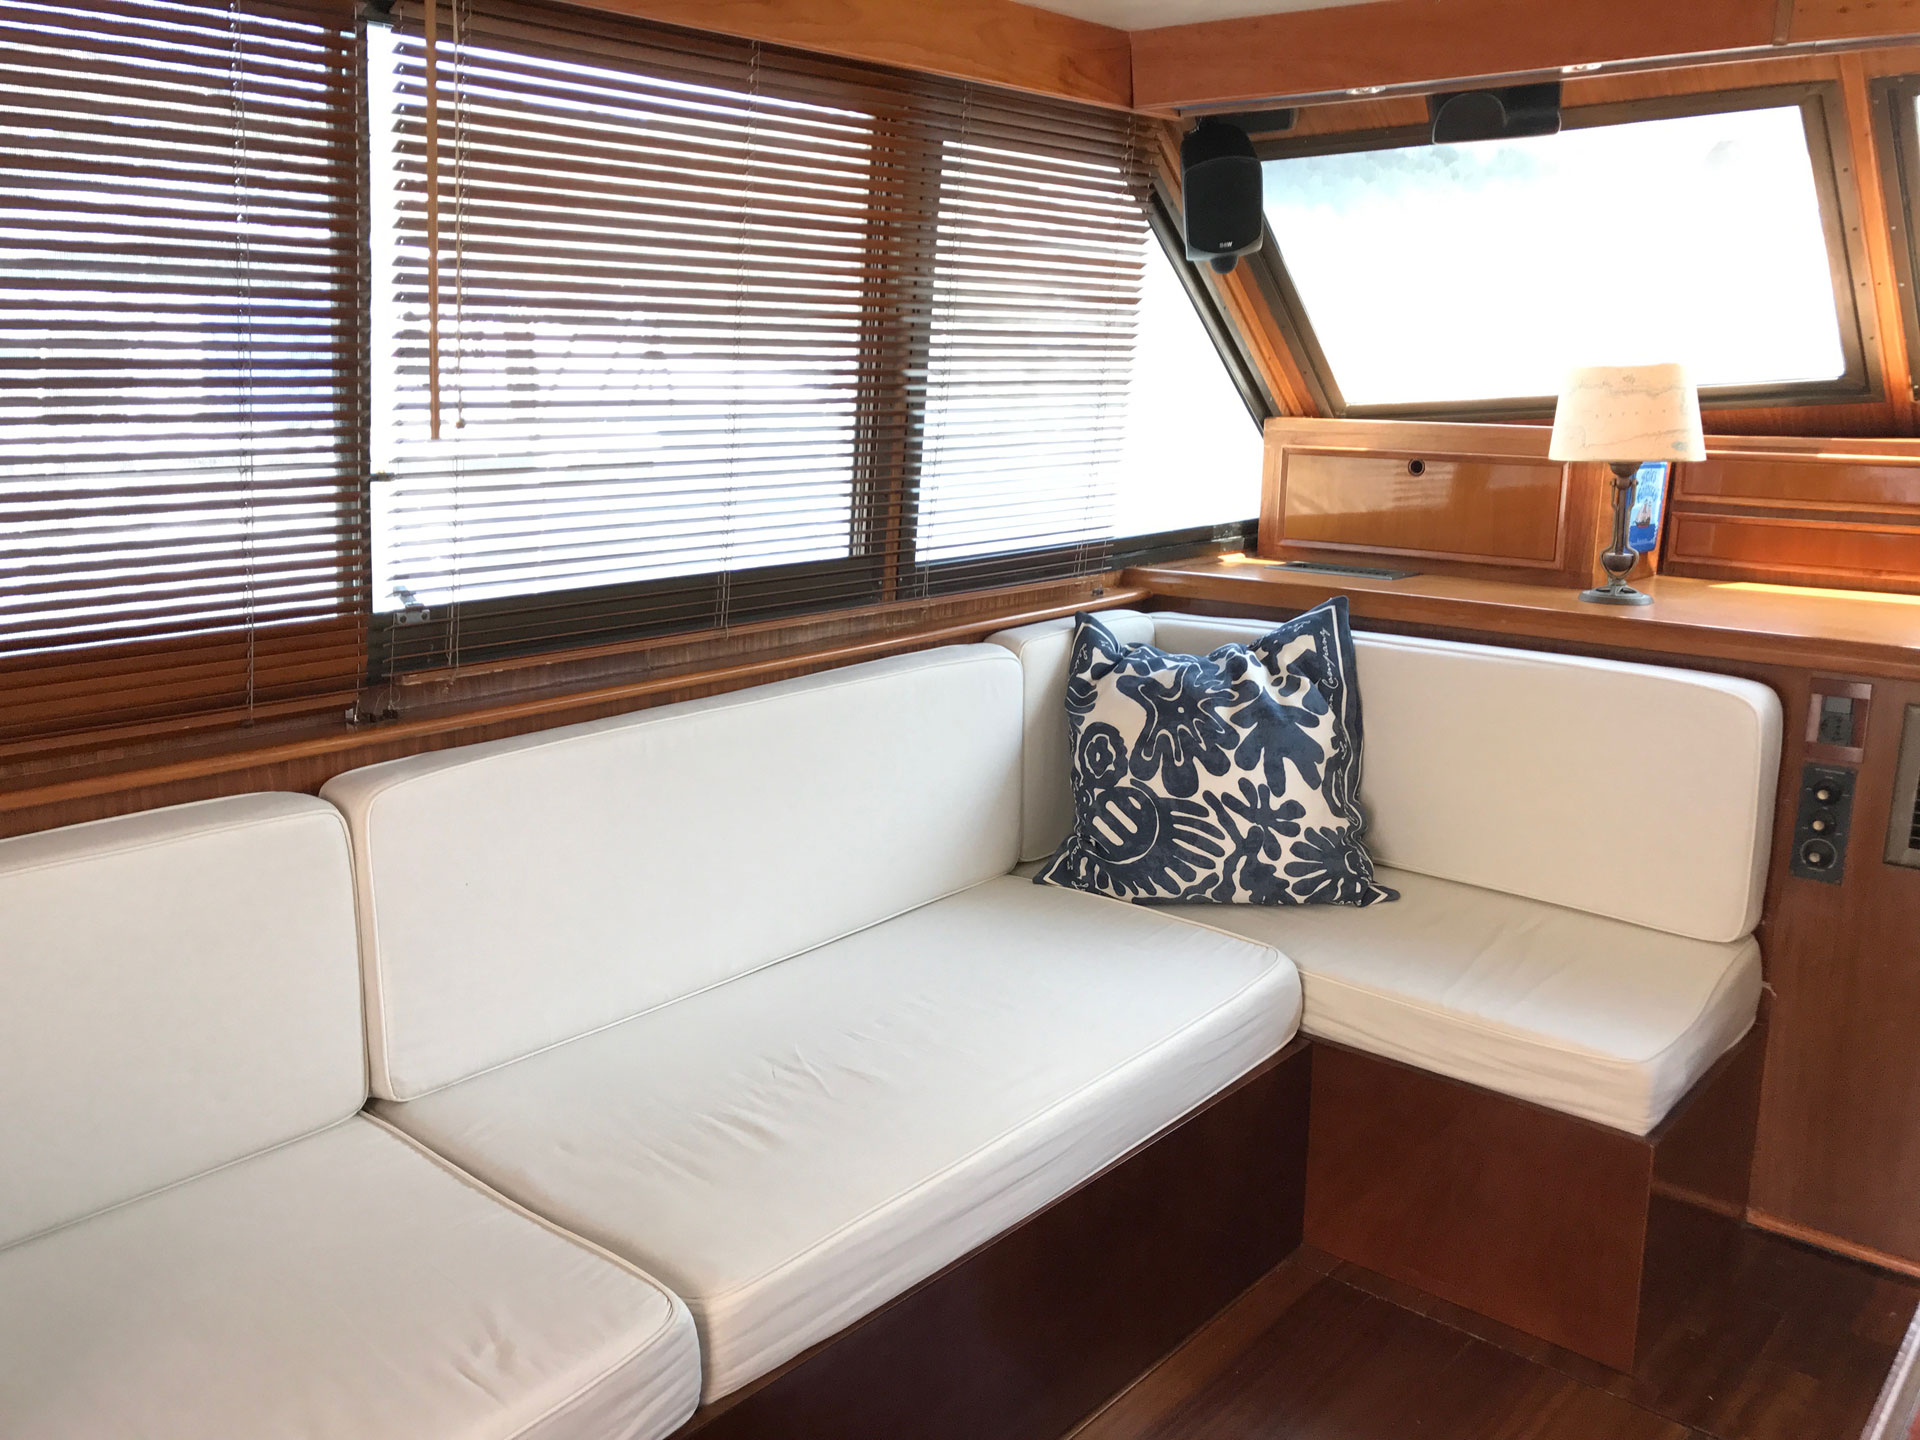 Santo-Maritime-Yachting-Hatteras-Inside-Image7